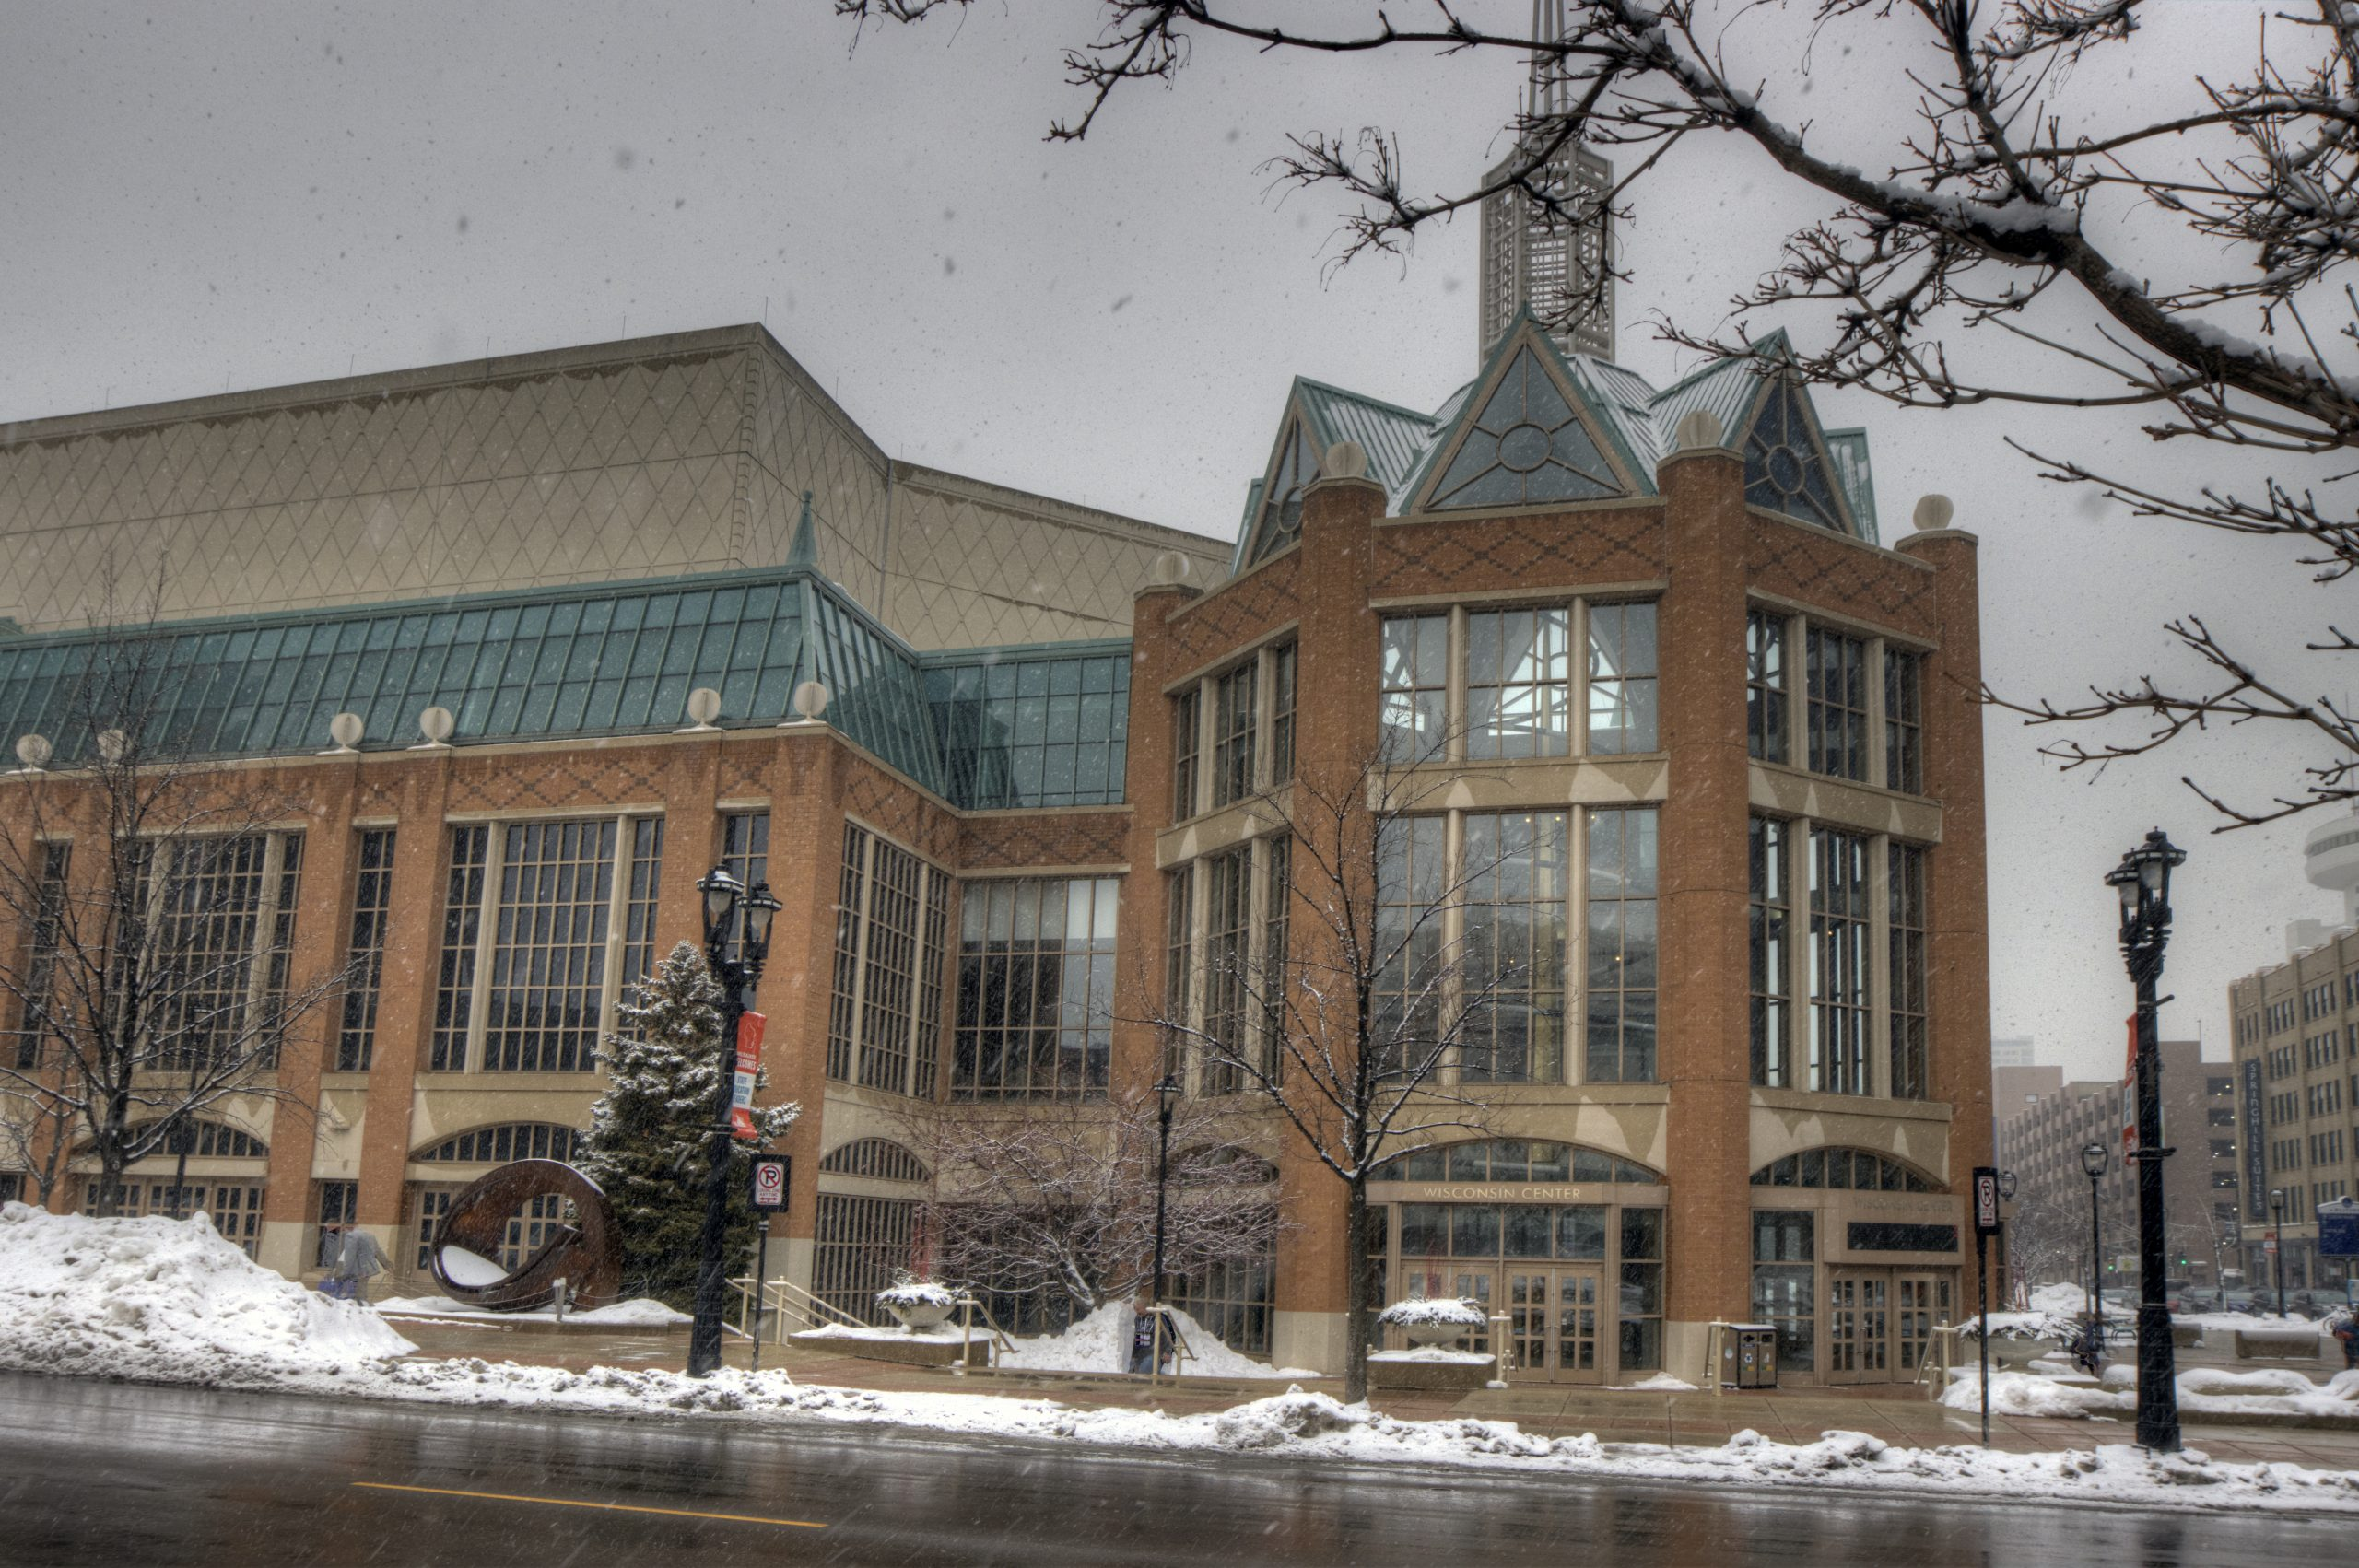 The Wisconsin Center, the site of the State Education Convention, in winter.